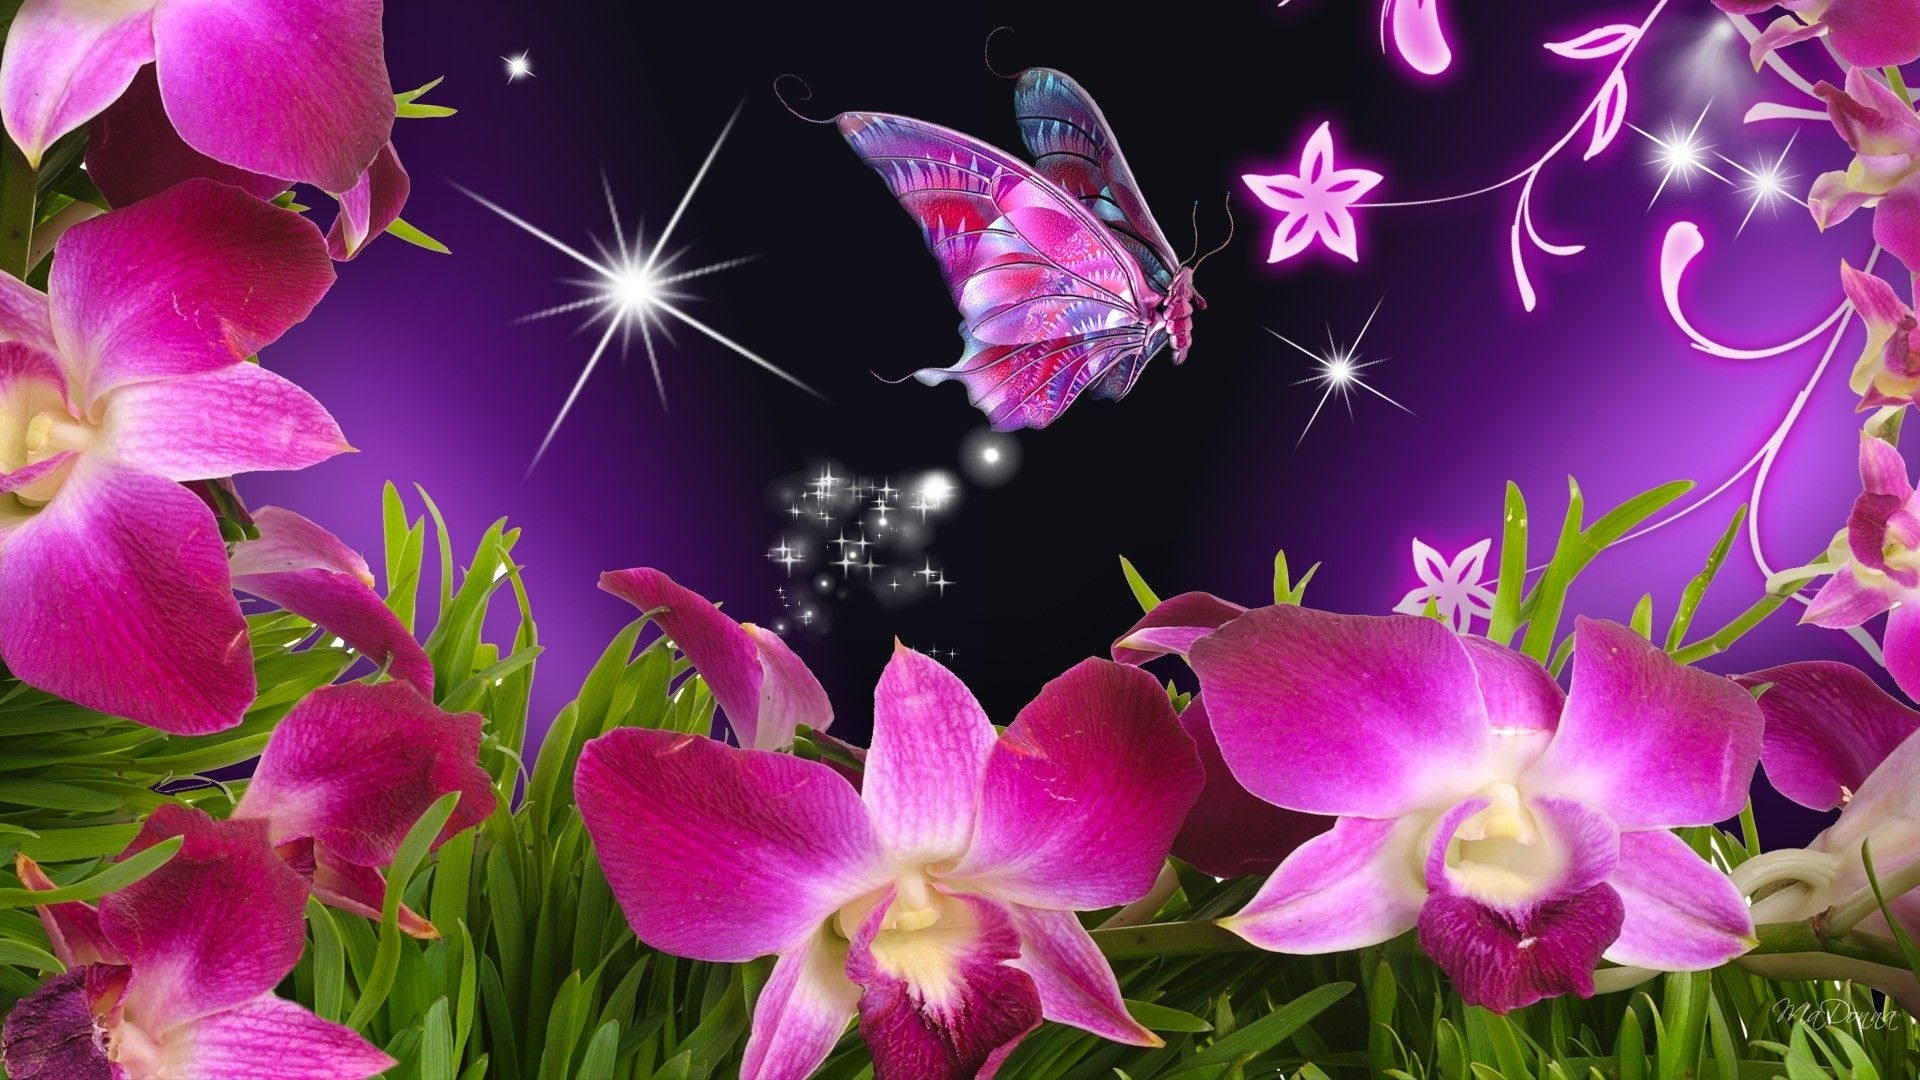 butterflies and flowers | butterfly flowers orchid purple stars